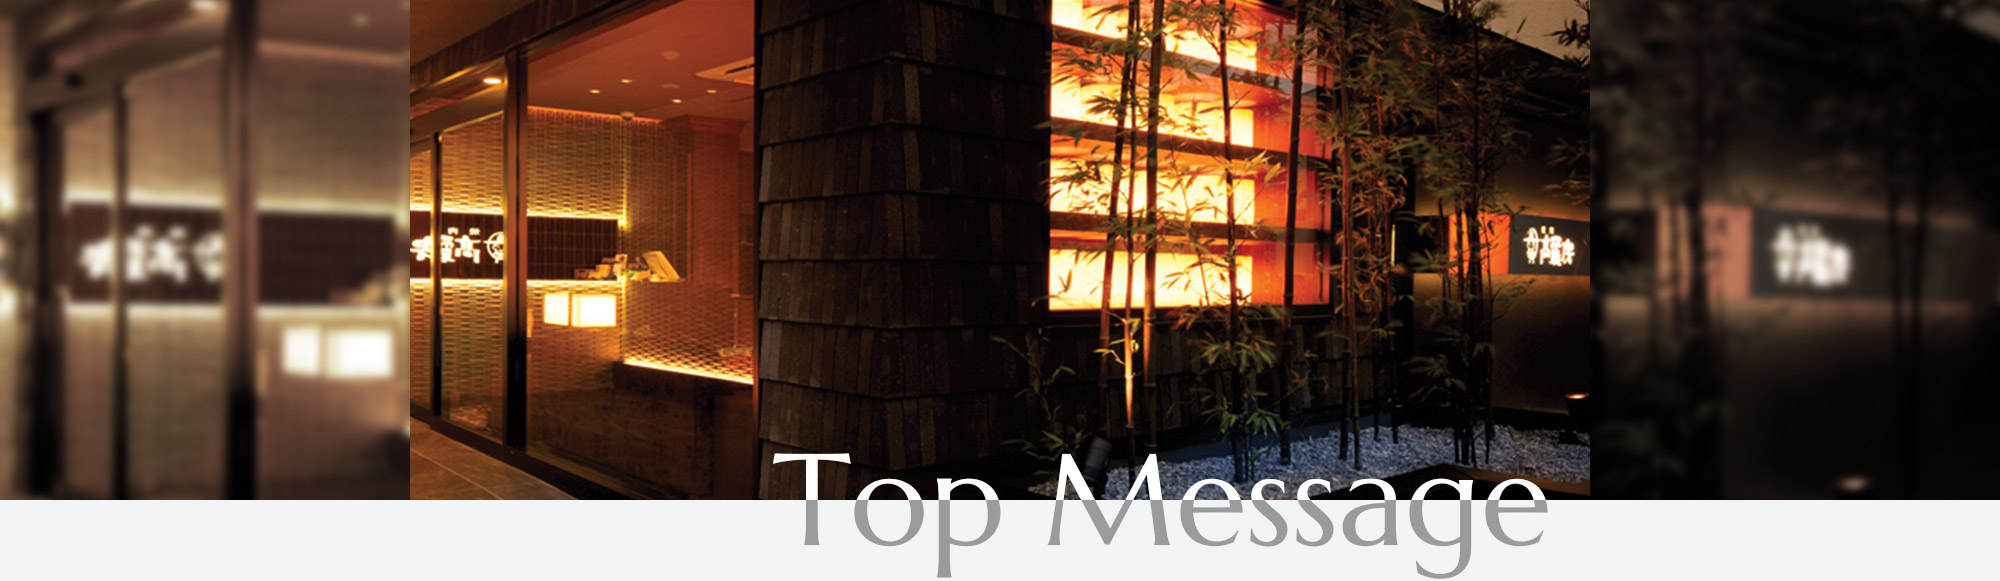 Top Message